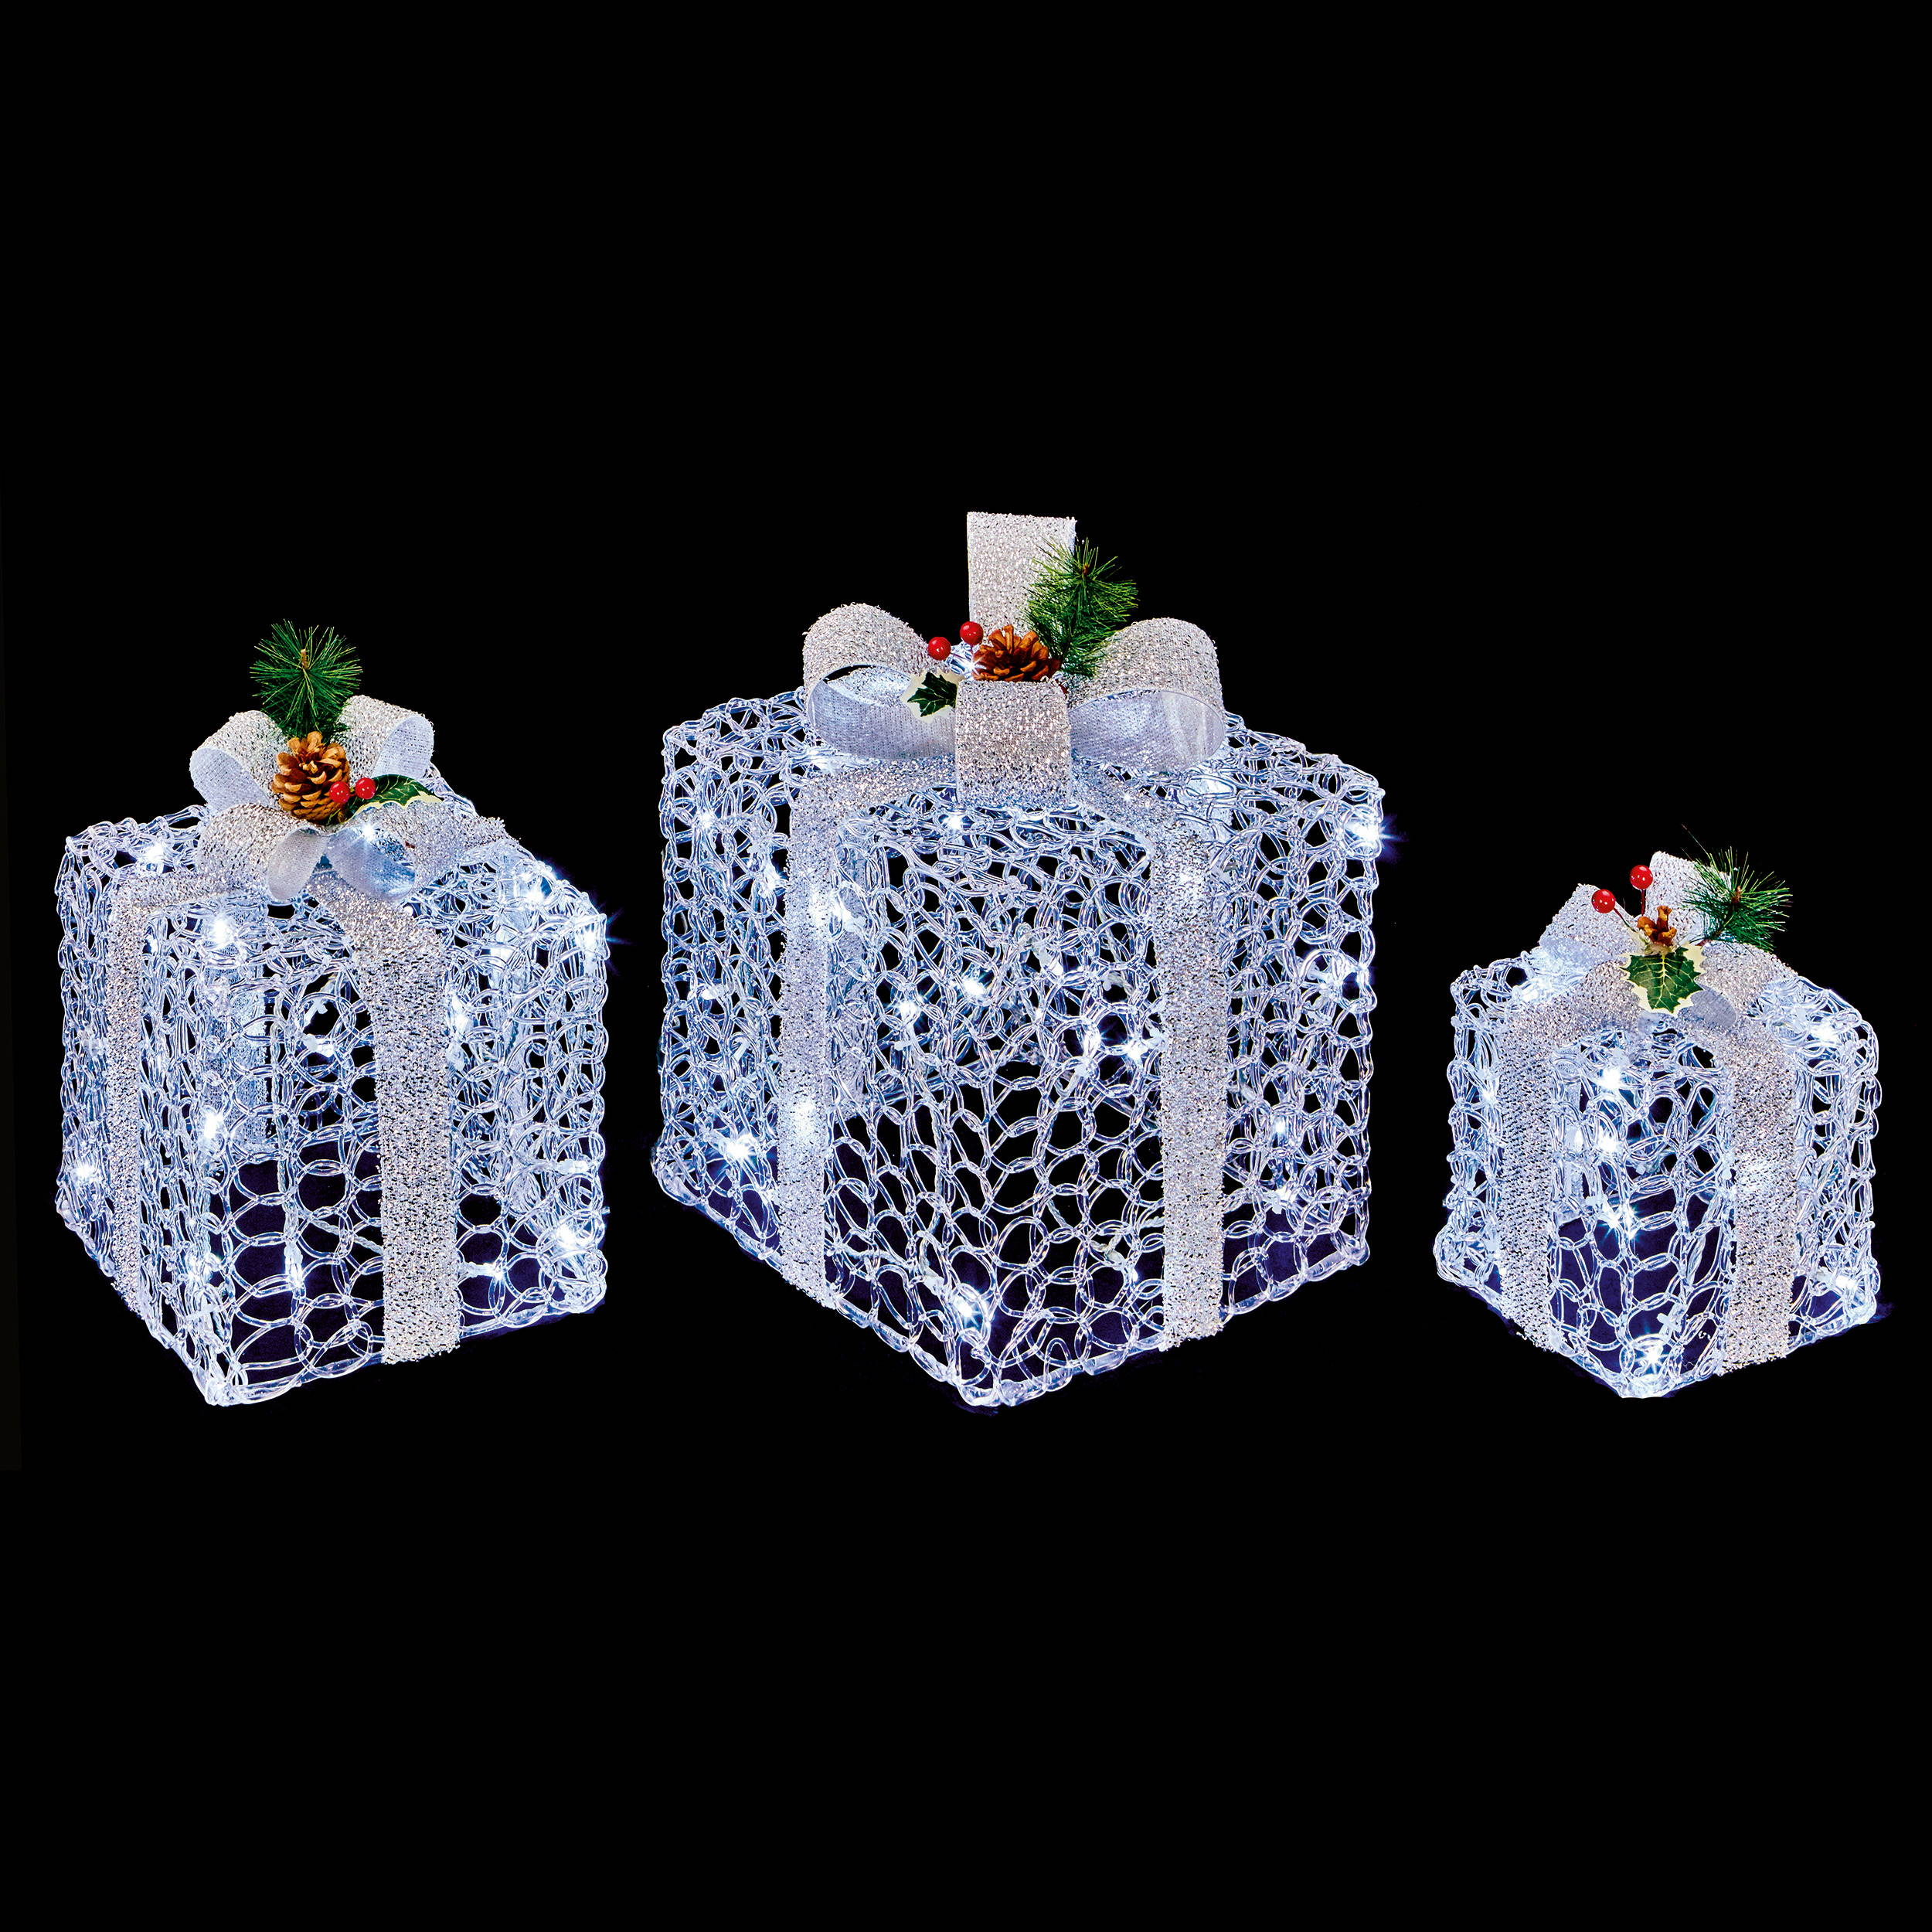 Set of 3 LED Light Up Silver Christmas Parcels with Silver Bow